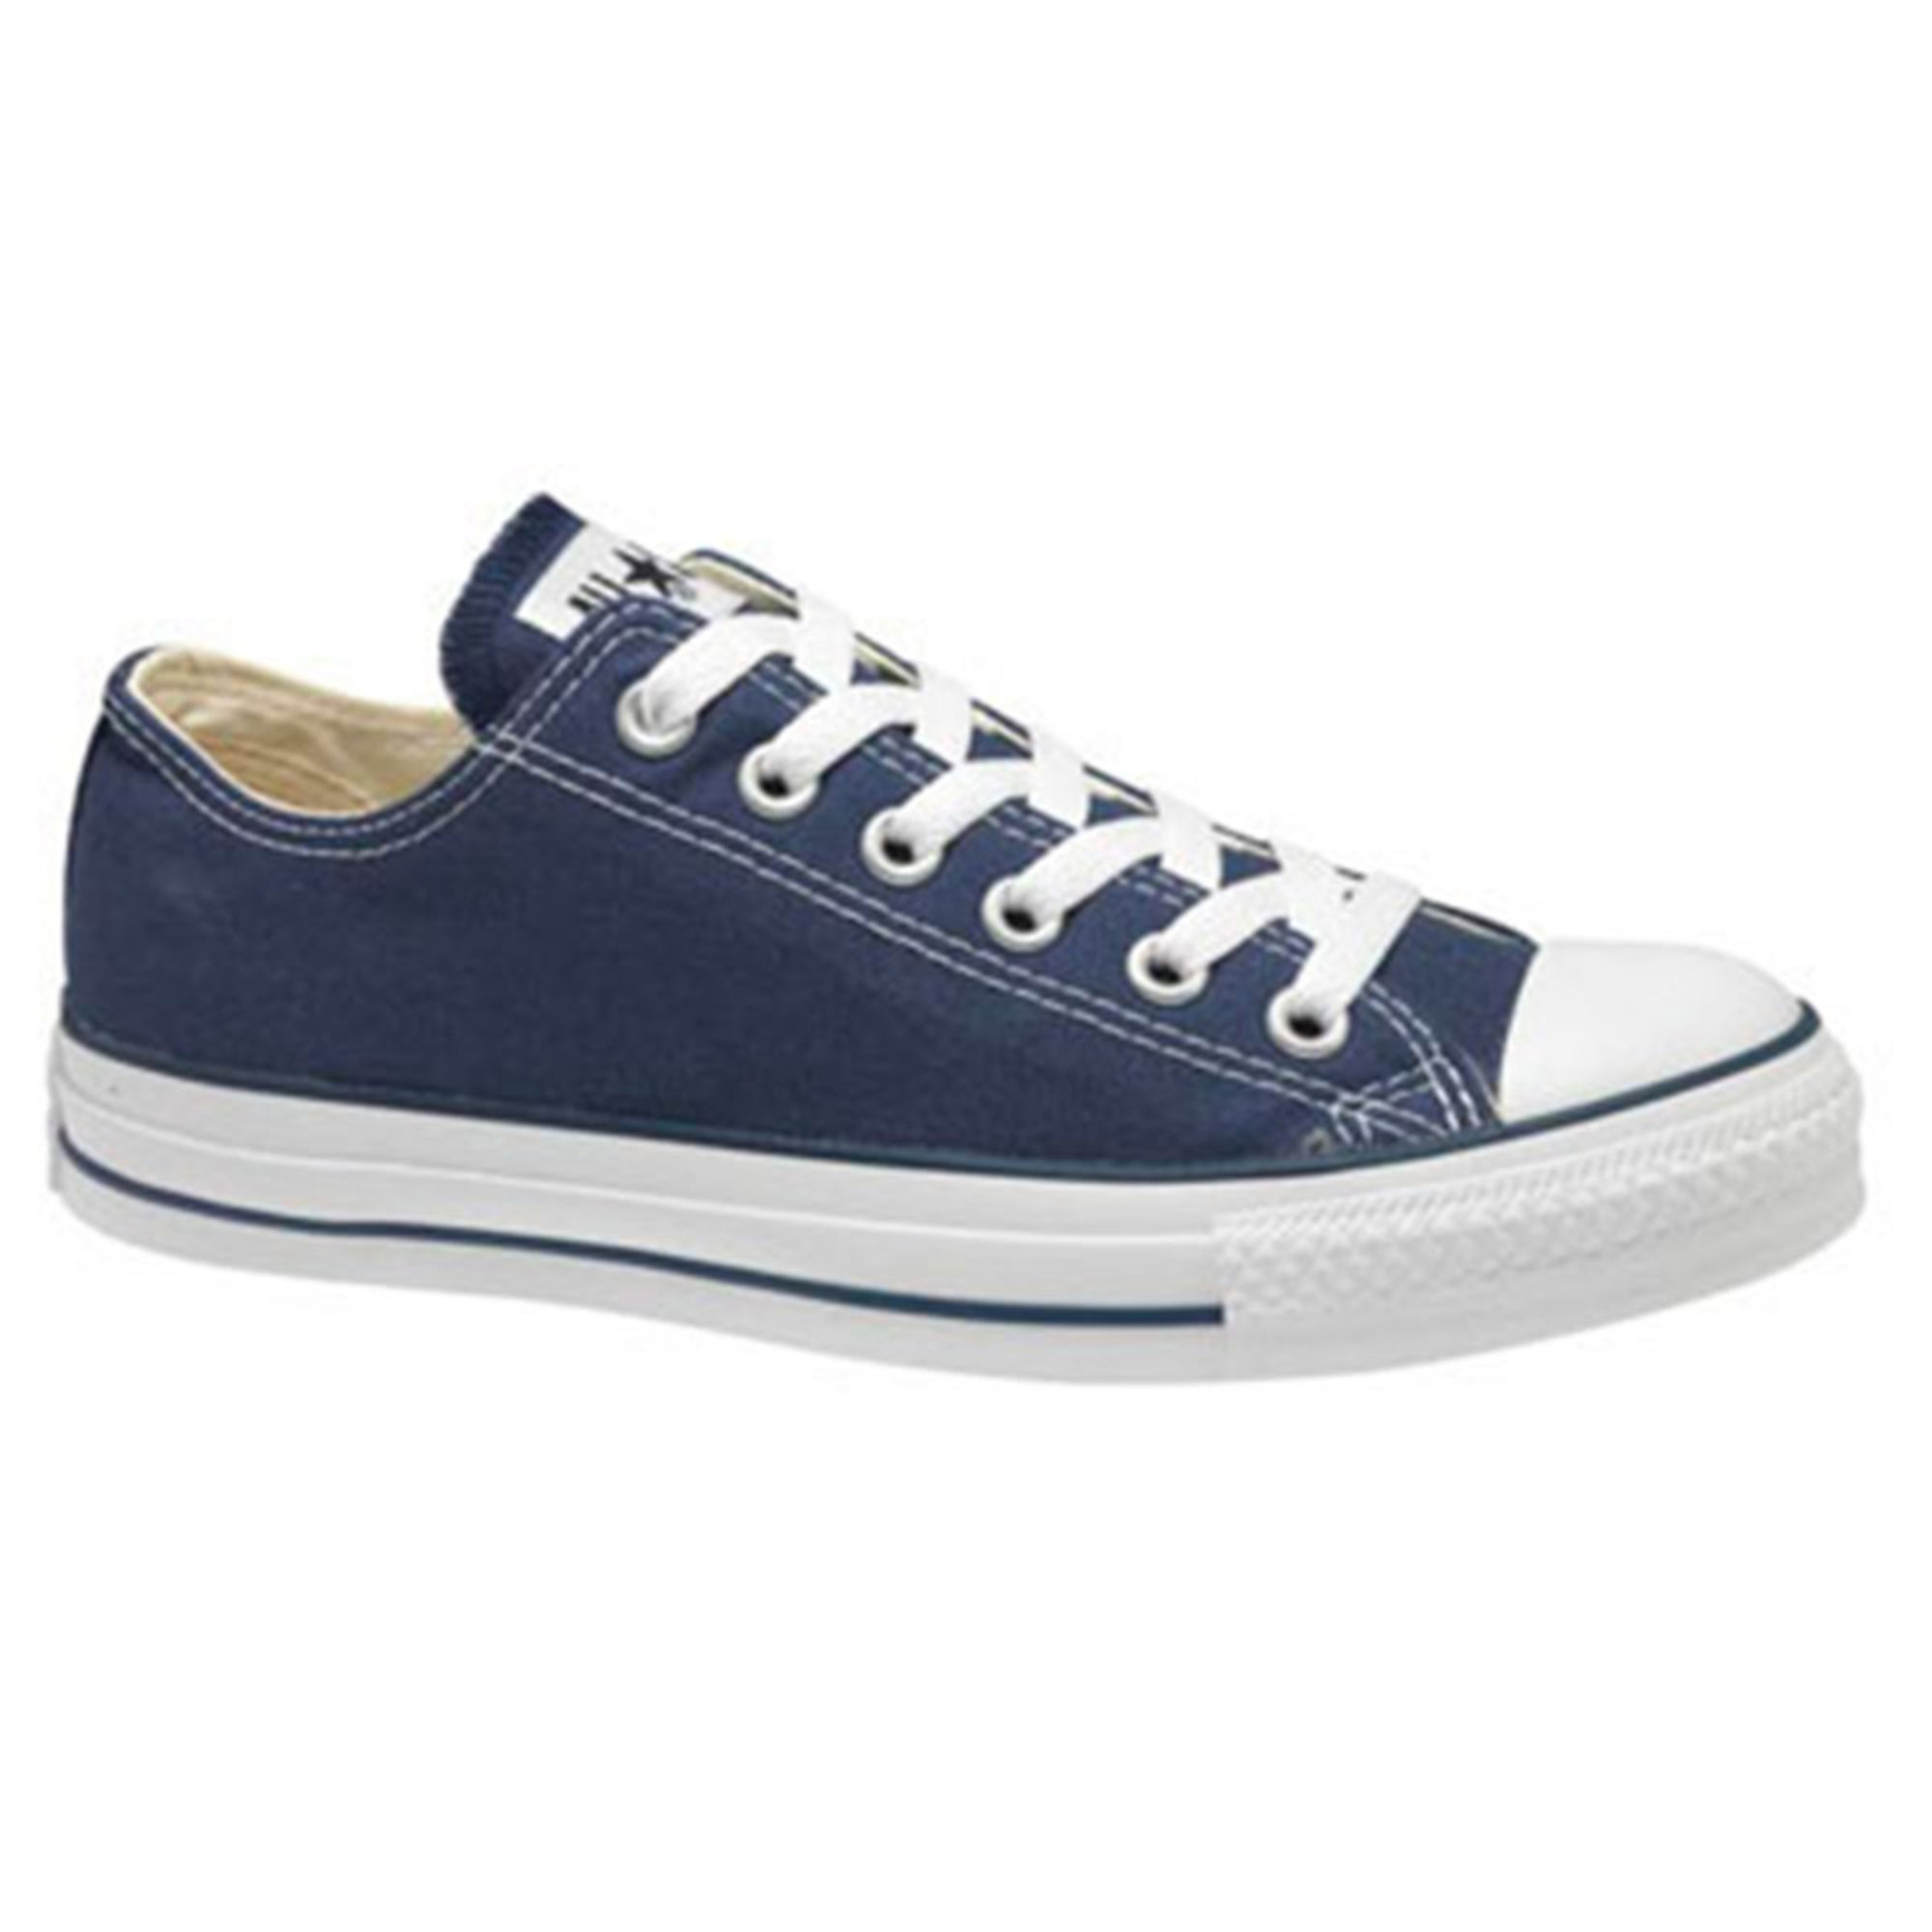 Converse. Converse Chuck Taylor All Star Low Top Men's Shoe